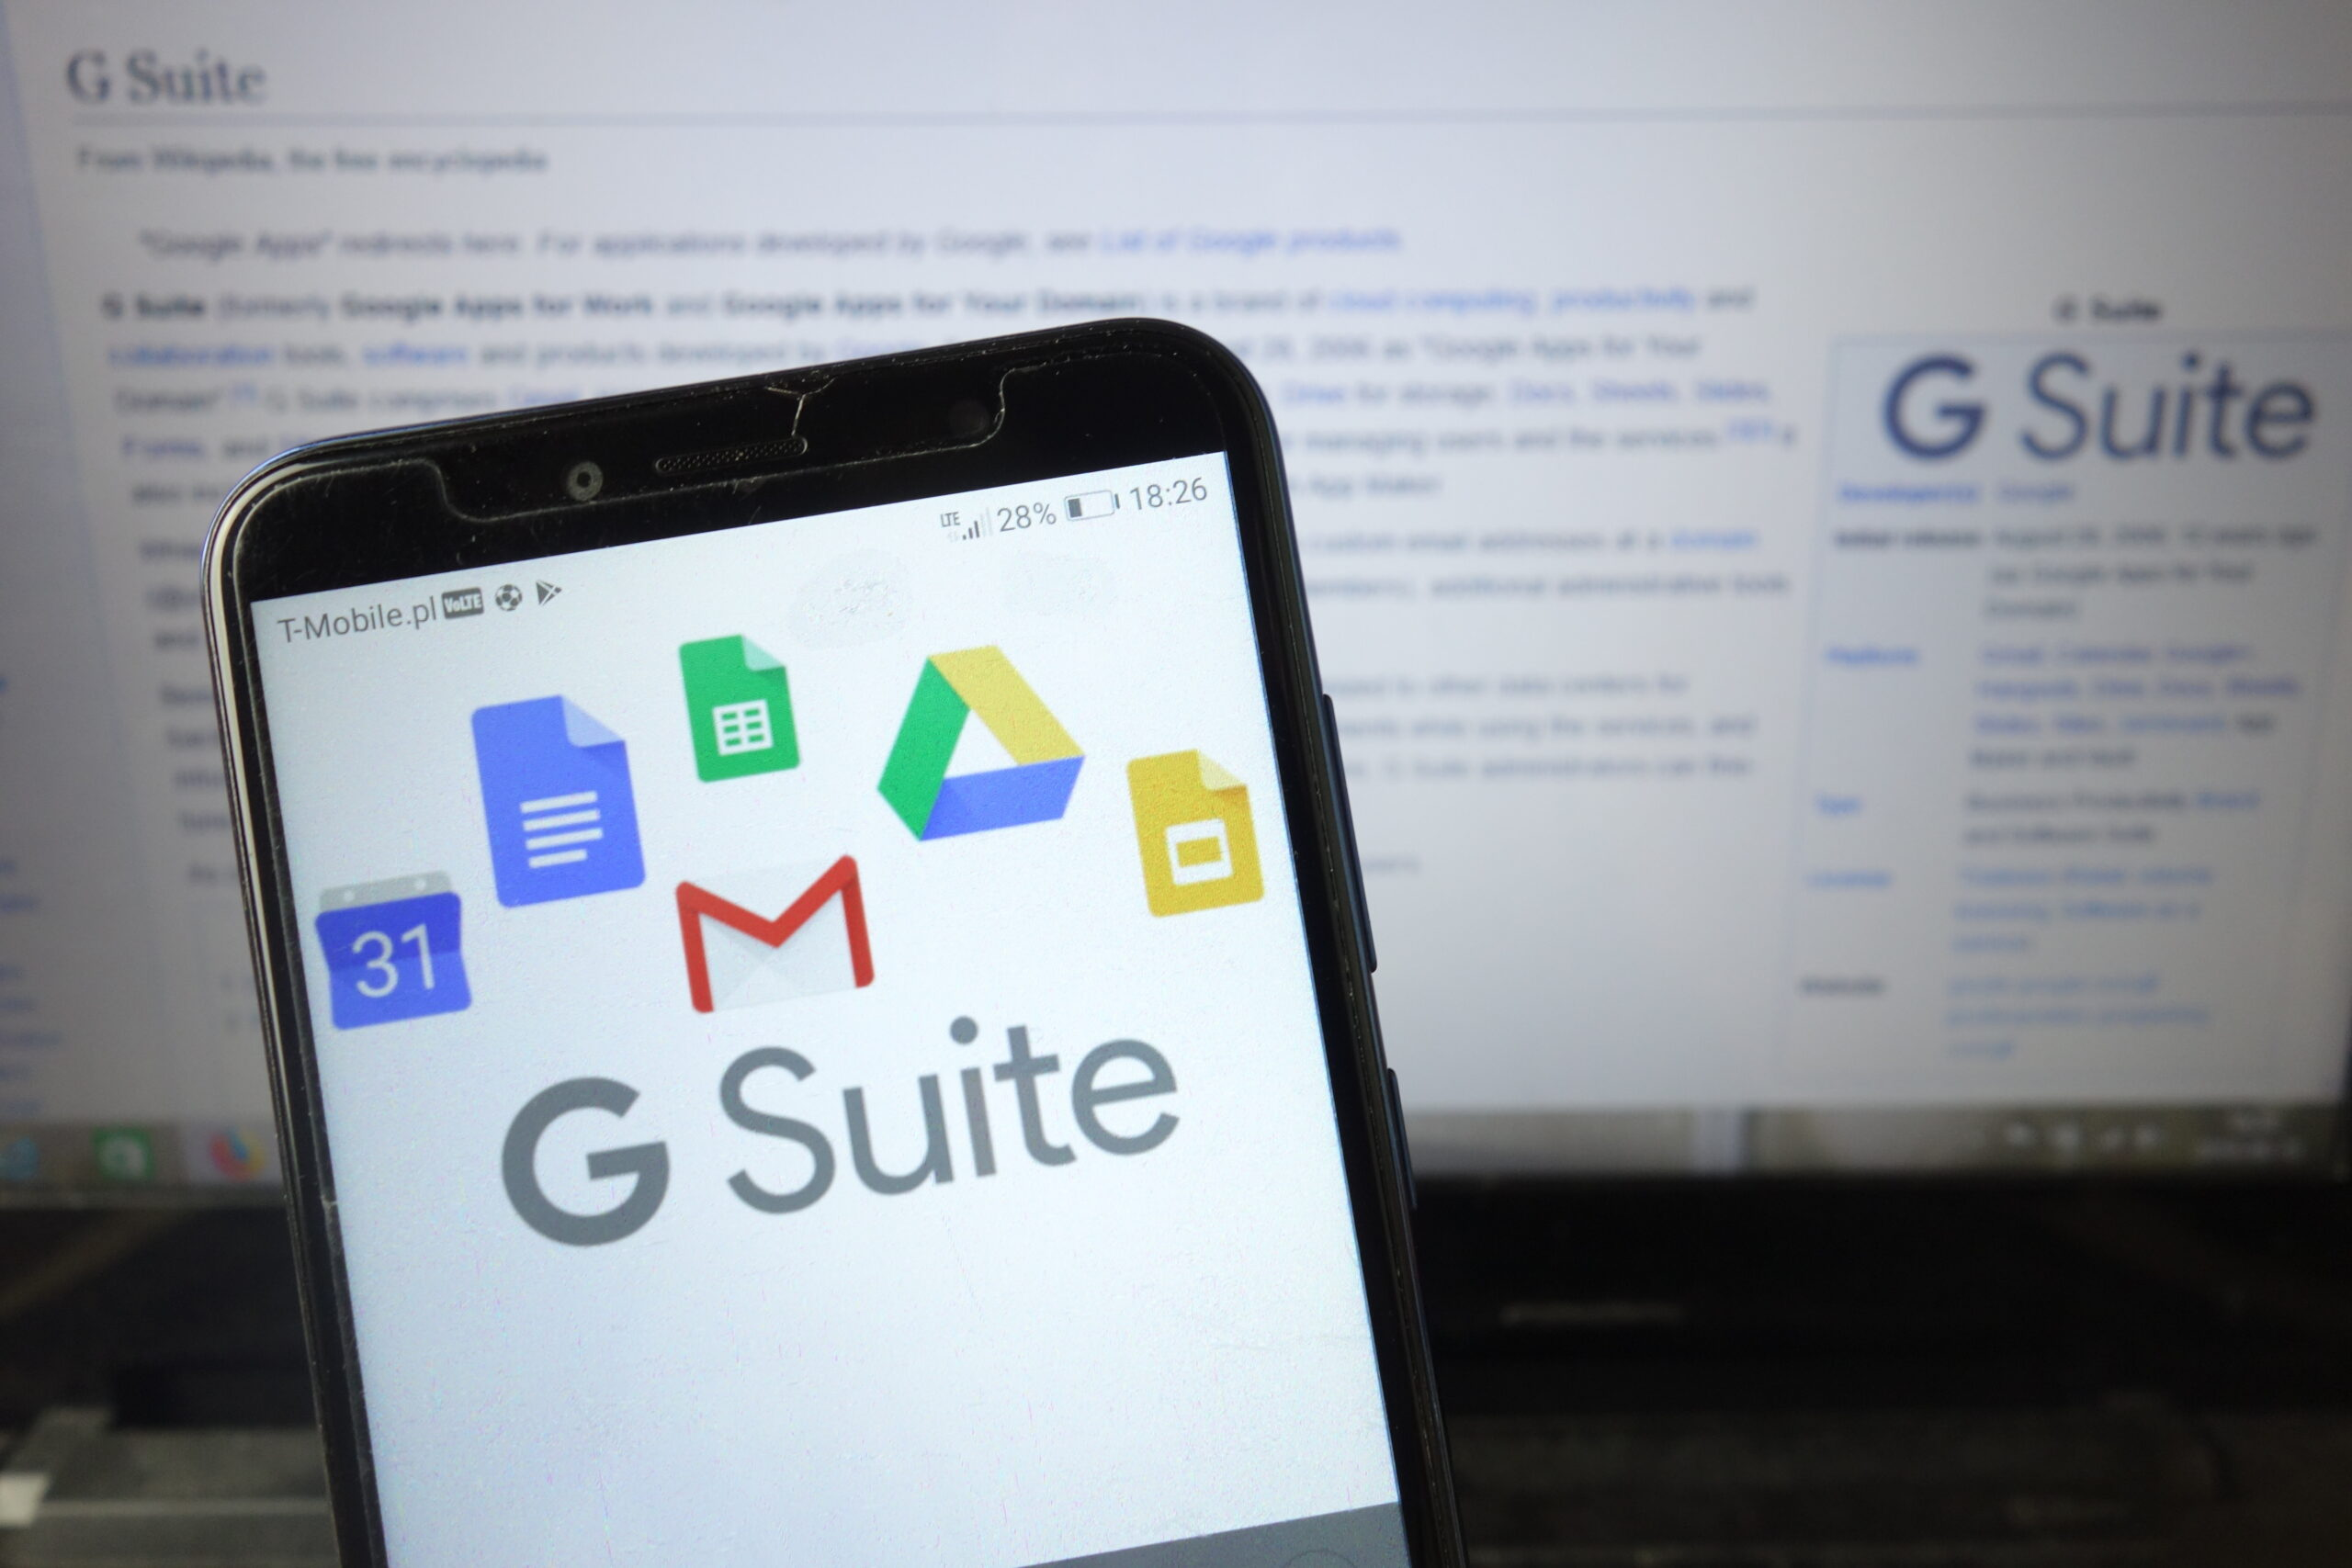 G suite editorial use onl;y